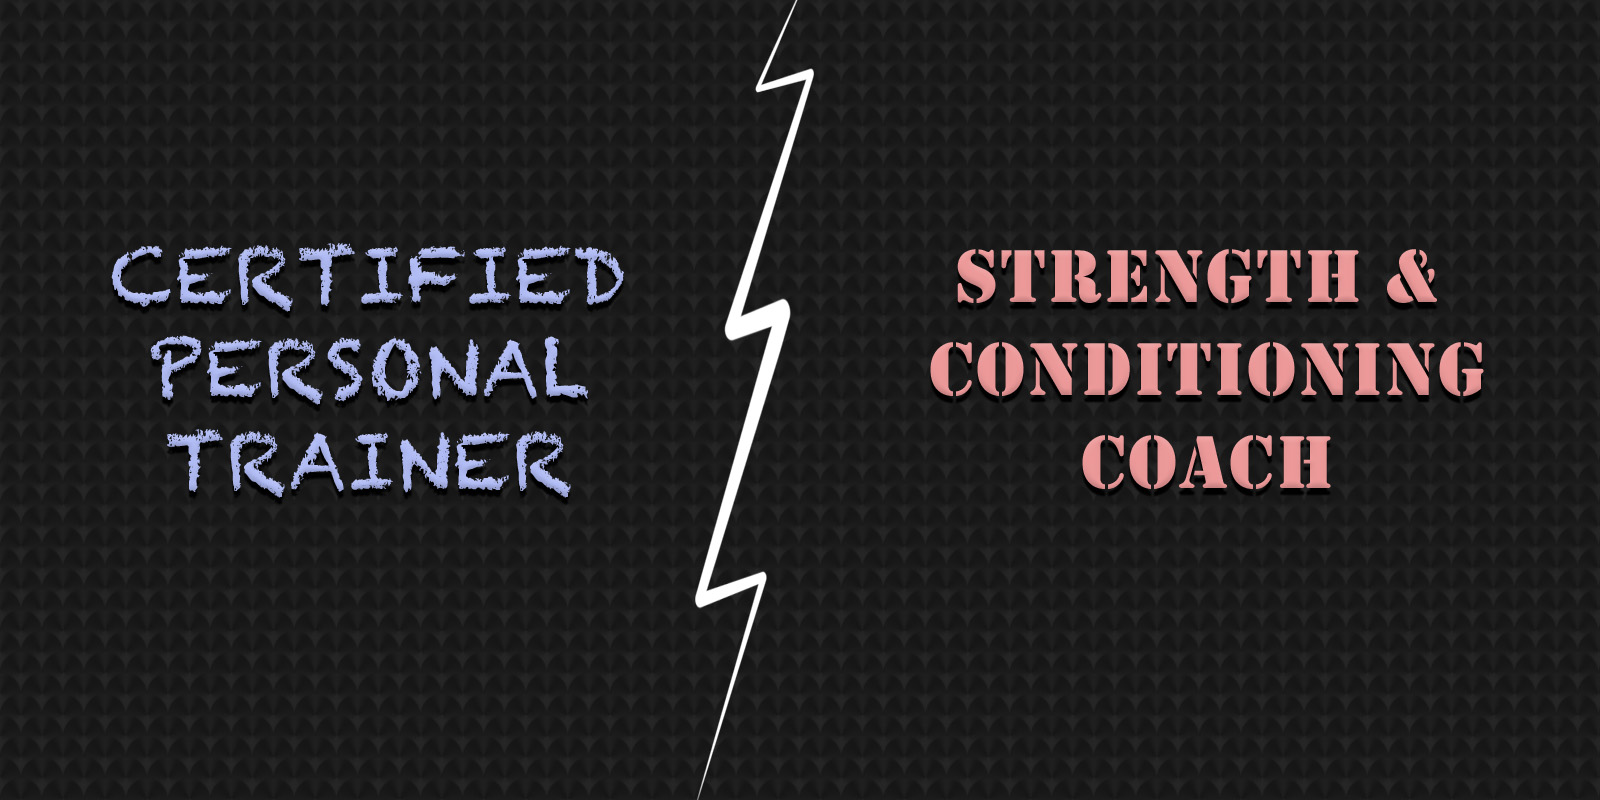 Strength And Conditioning Coach Cscs Vs Certified Personal Trainer